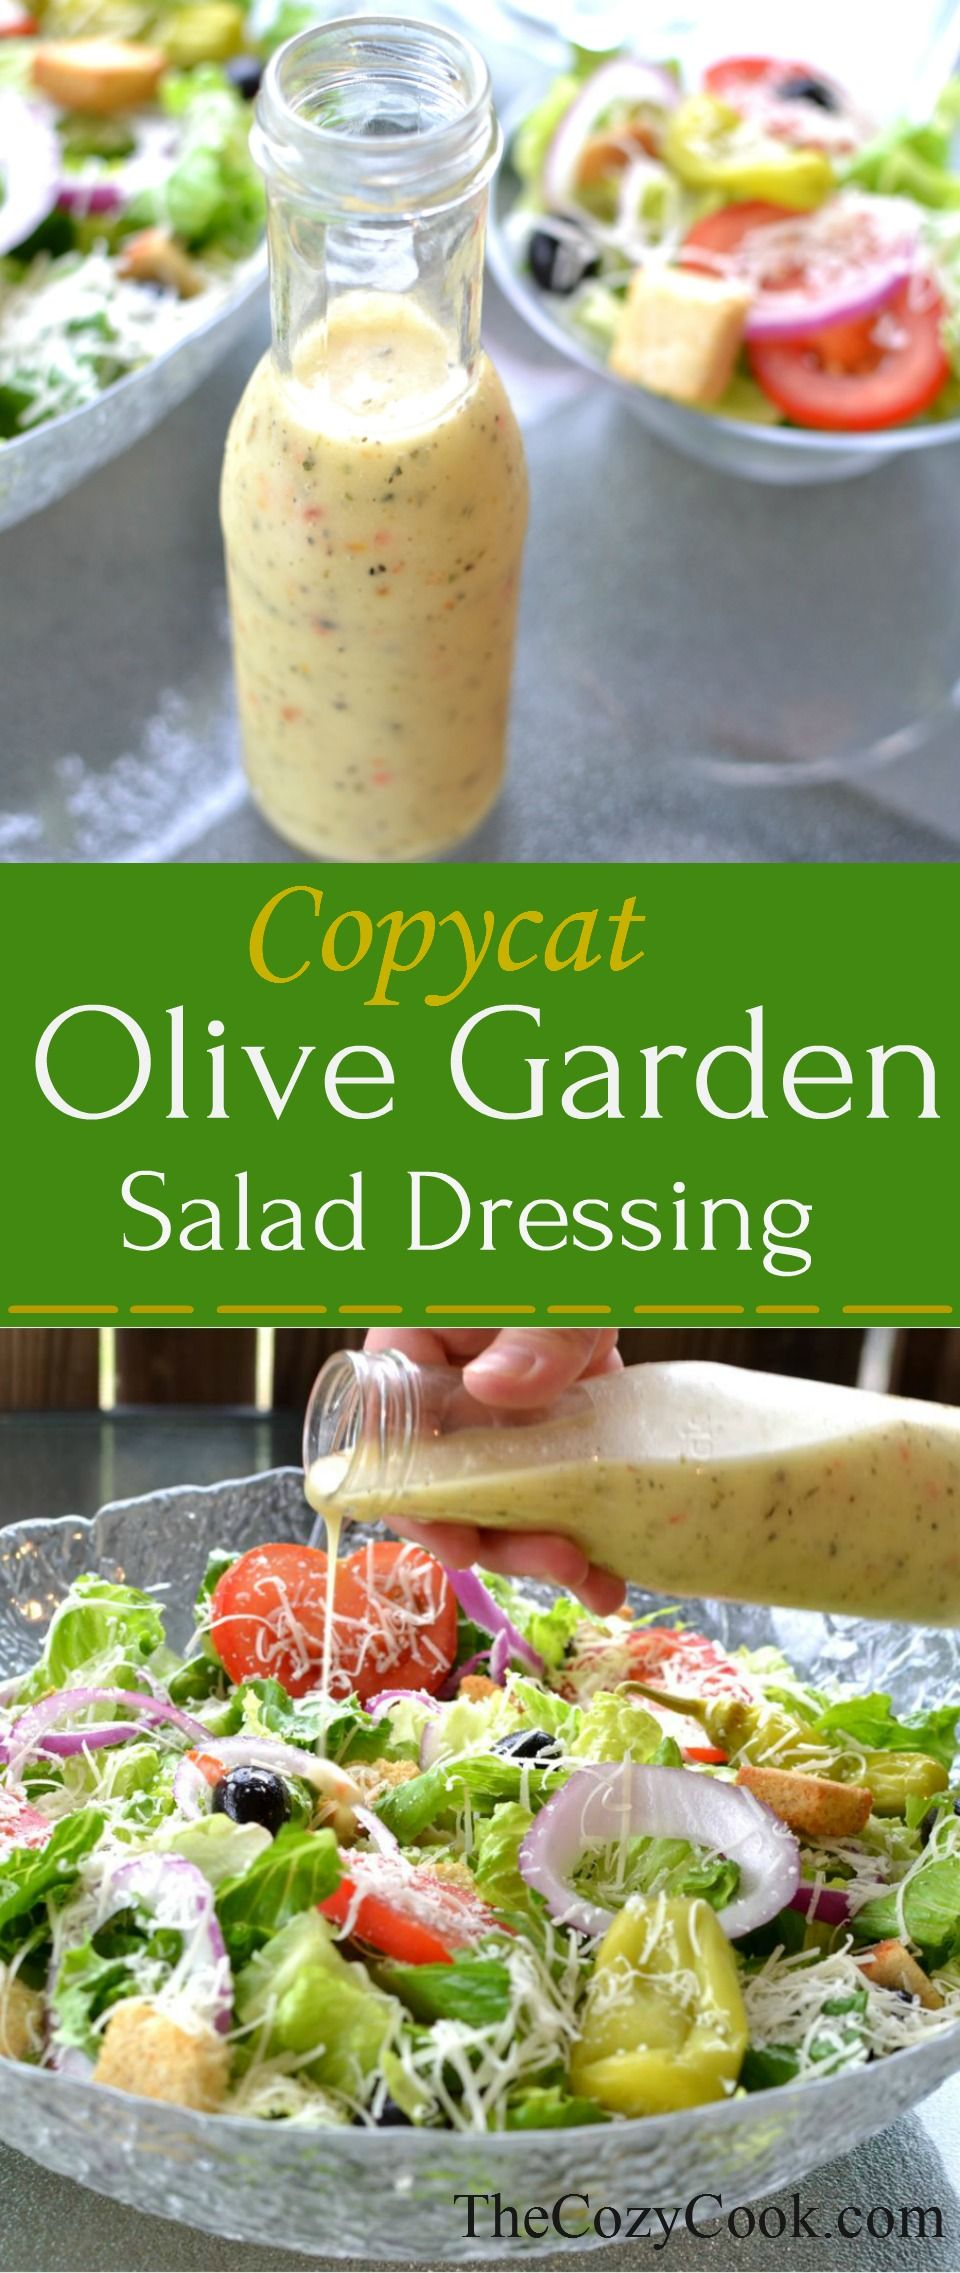 copycat olive garden salad dressing recipe salads pinterest olive garden salad salad ingredients and olive gardens - Olive Garden Salad Dressing